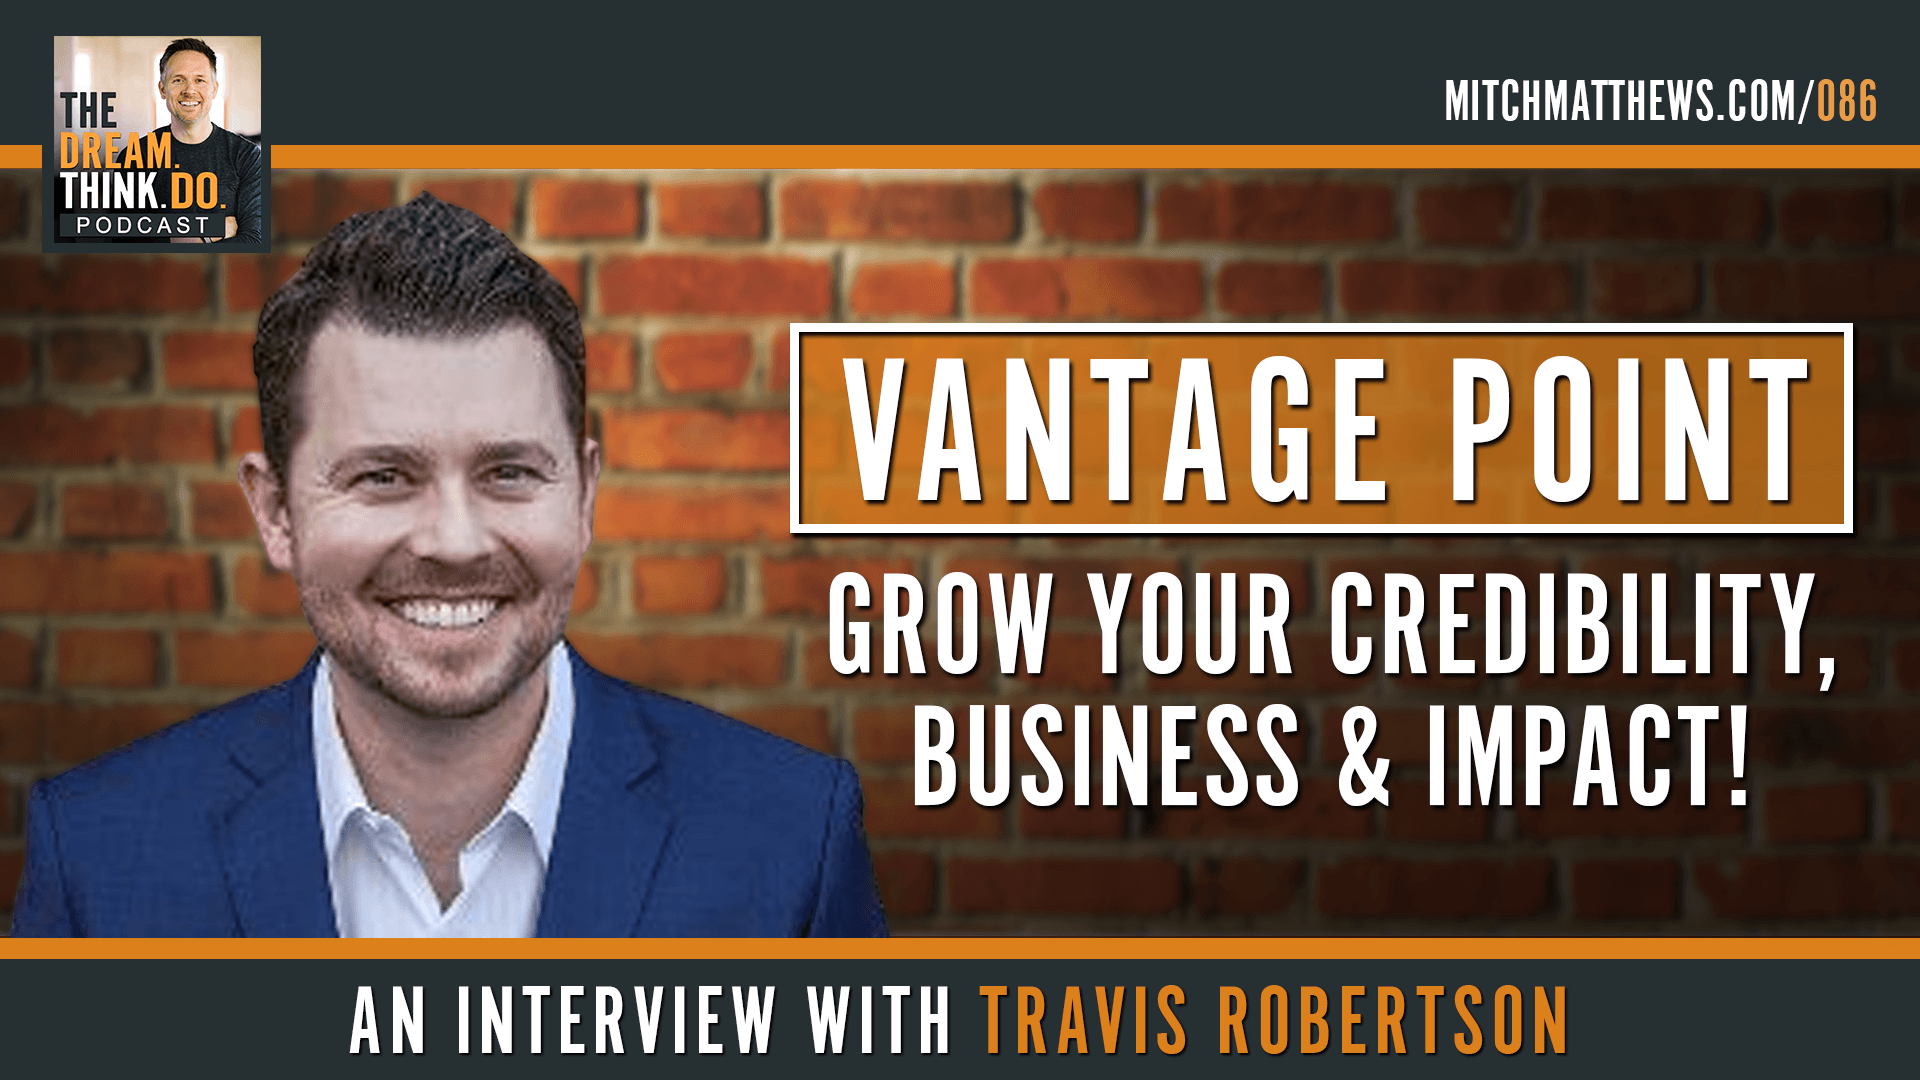 Travis Robertson | VANTAGE POINT - Grow your credibility, business AND impact!